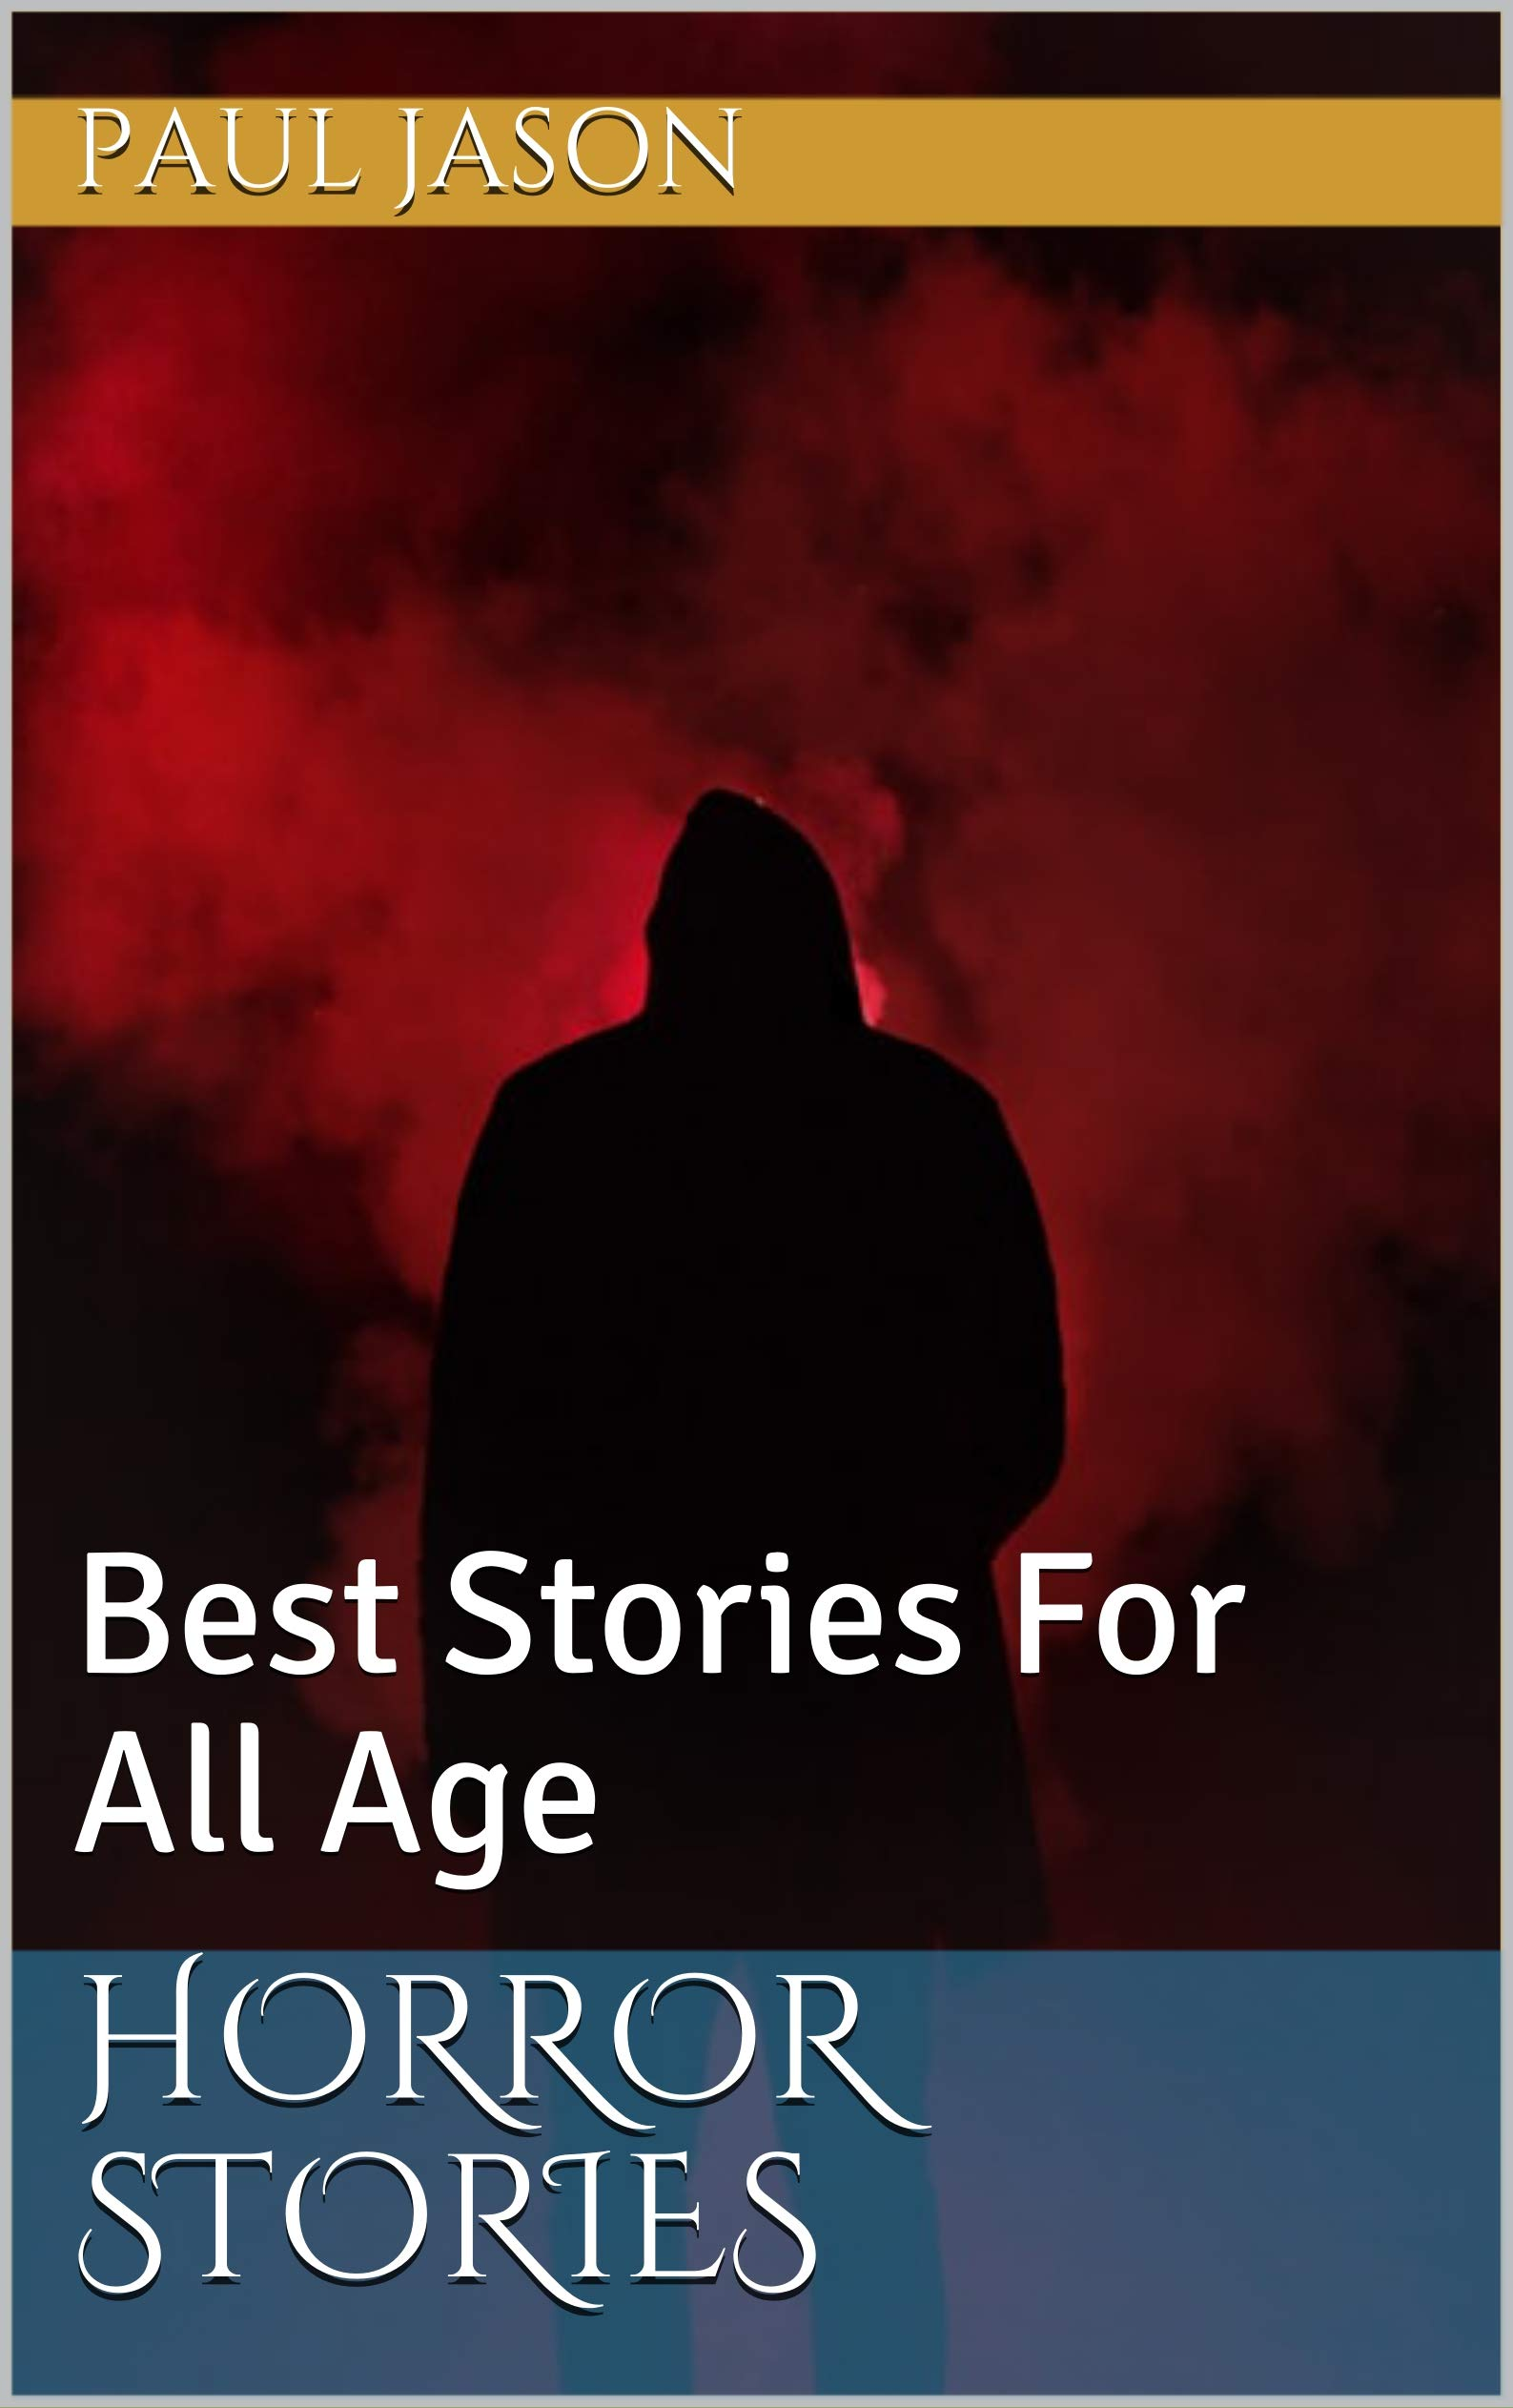 Horror Stories: Best Stories For All Age